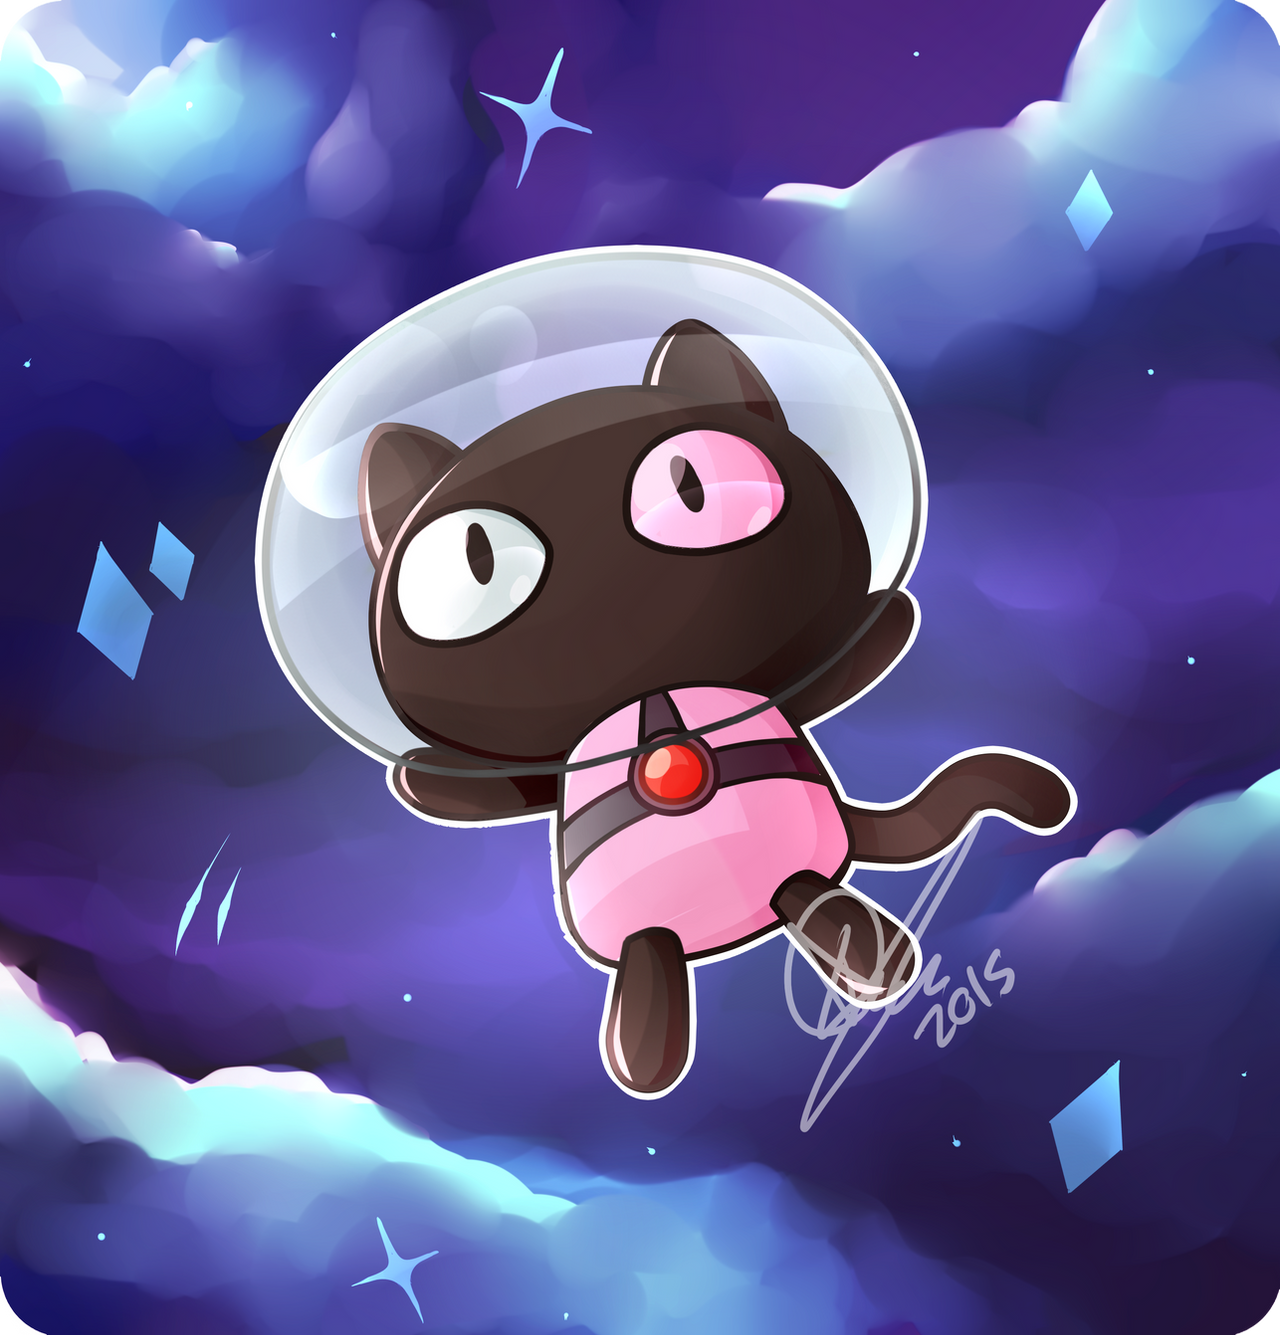 Hes A Pet For Your Tummy Cookie Cat By KeezaPepper On DeviantArt